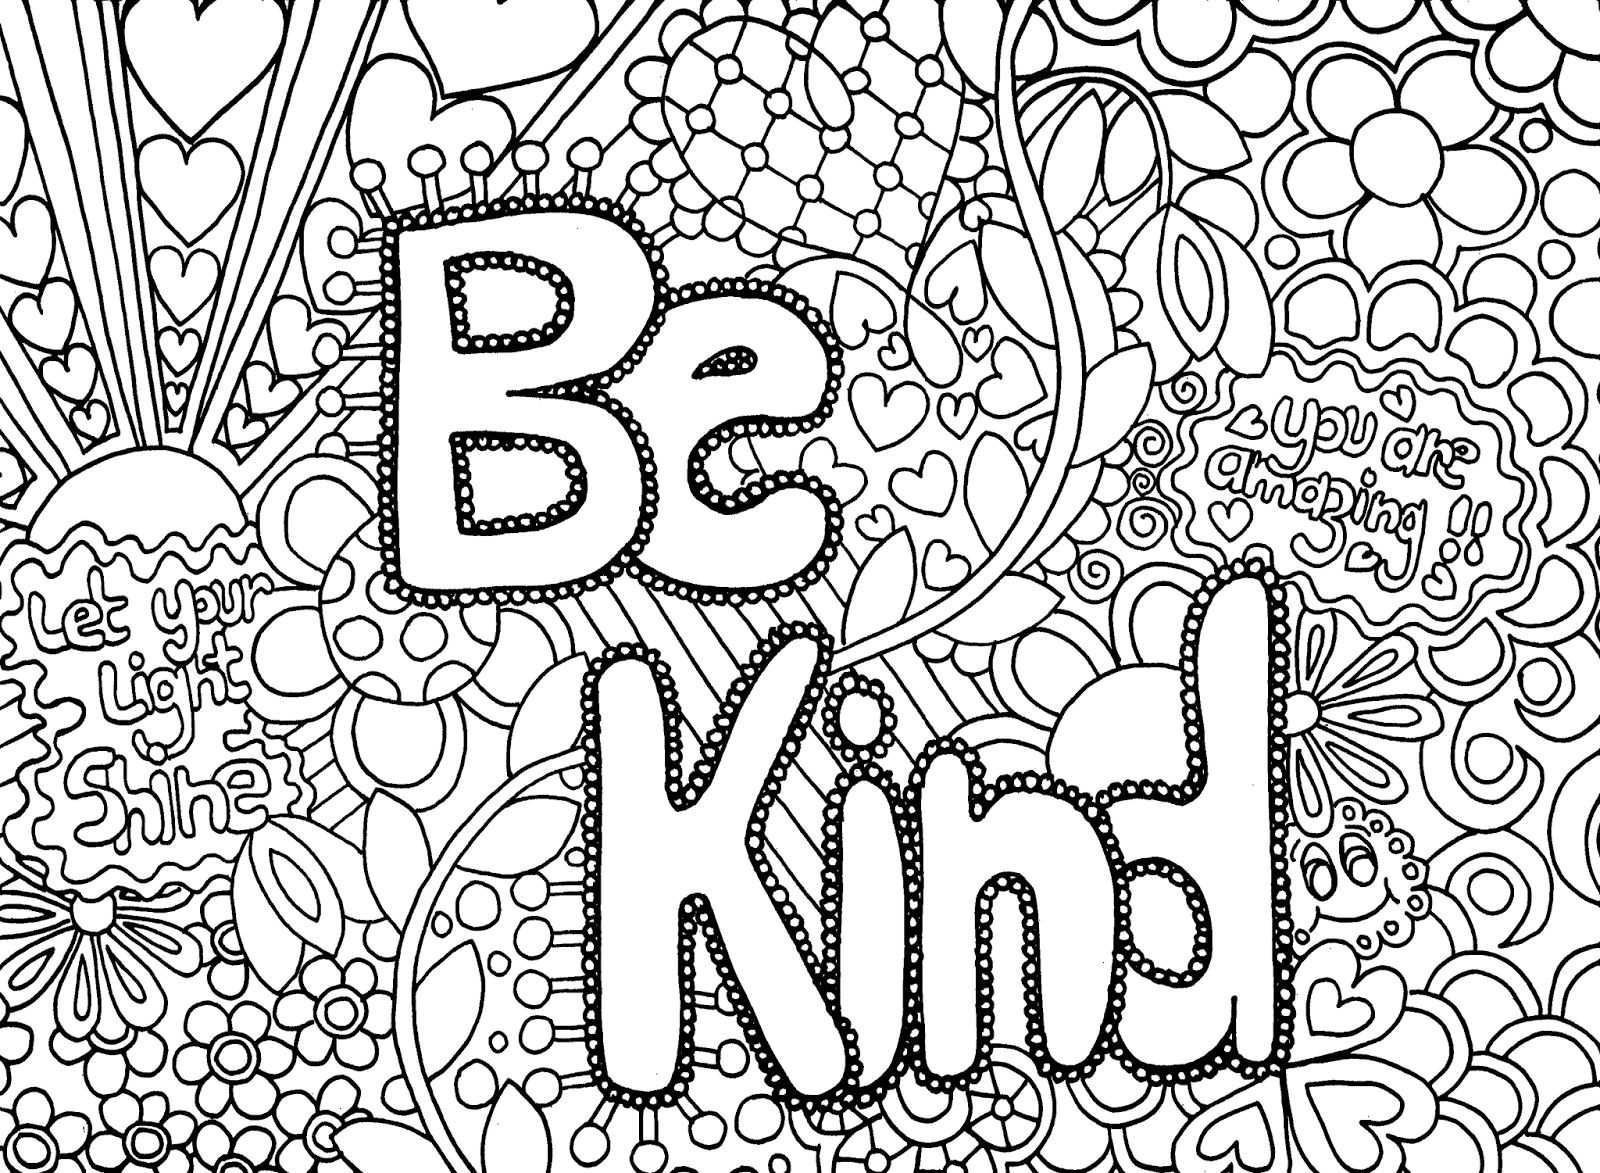 Coloring pages kindness - Be Kind Adult Coloring Page Acts Of Kindness Coloring Pages Info On Kindness Coloring Pages Free